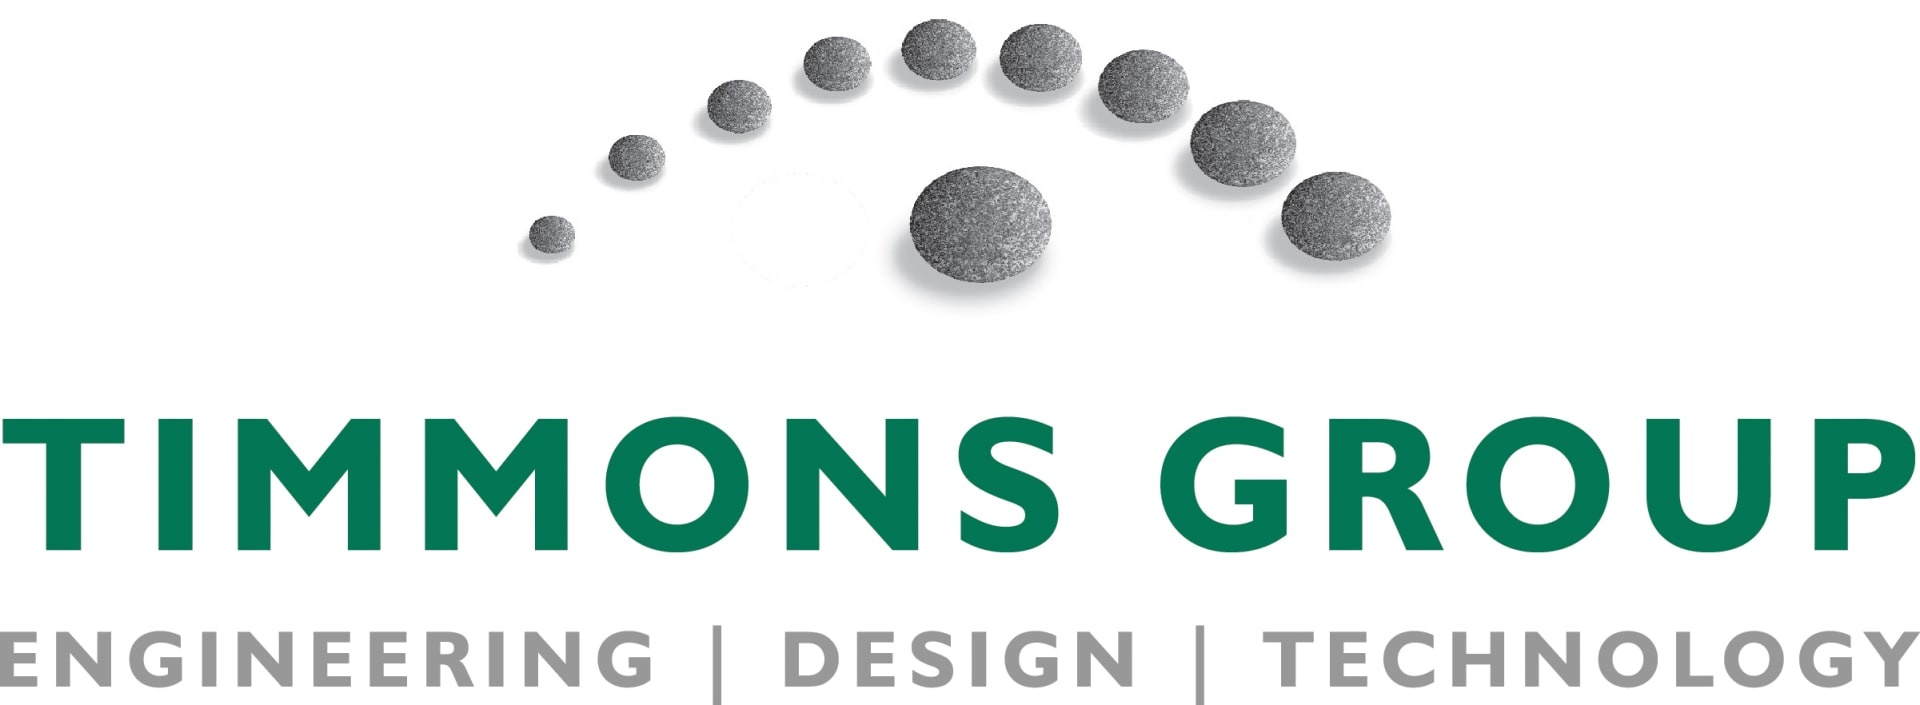 TG-Corporate-Logo-_Green-Gray_Services_EngineeringTech-w1920.jpg